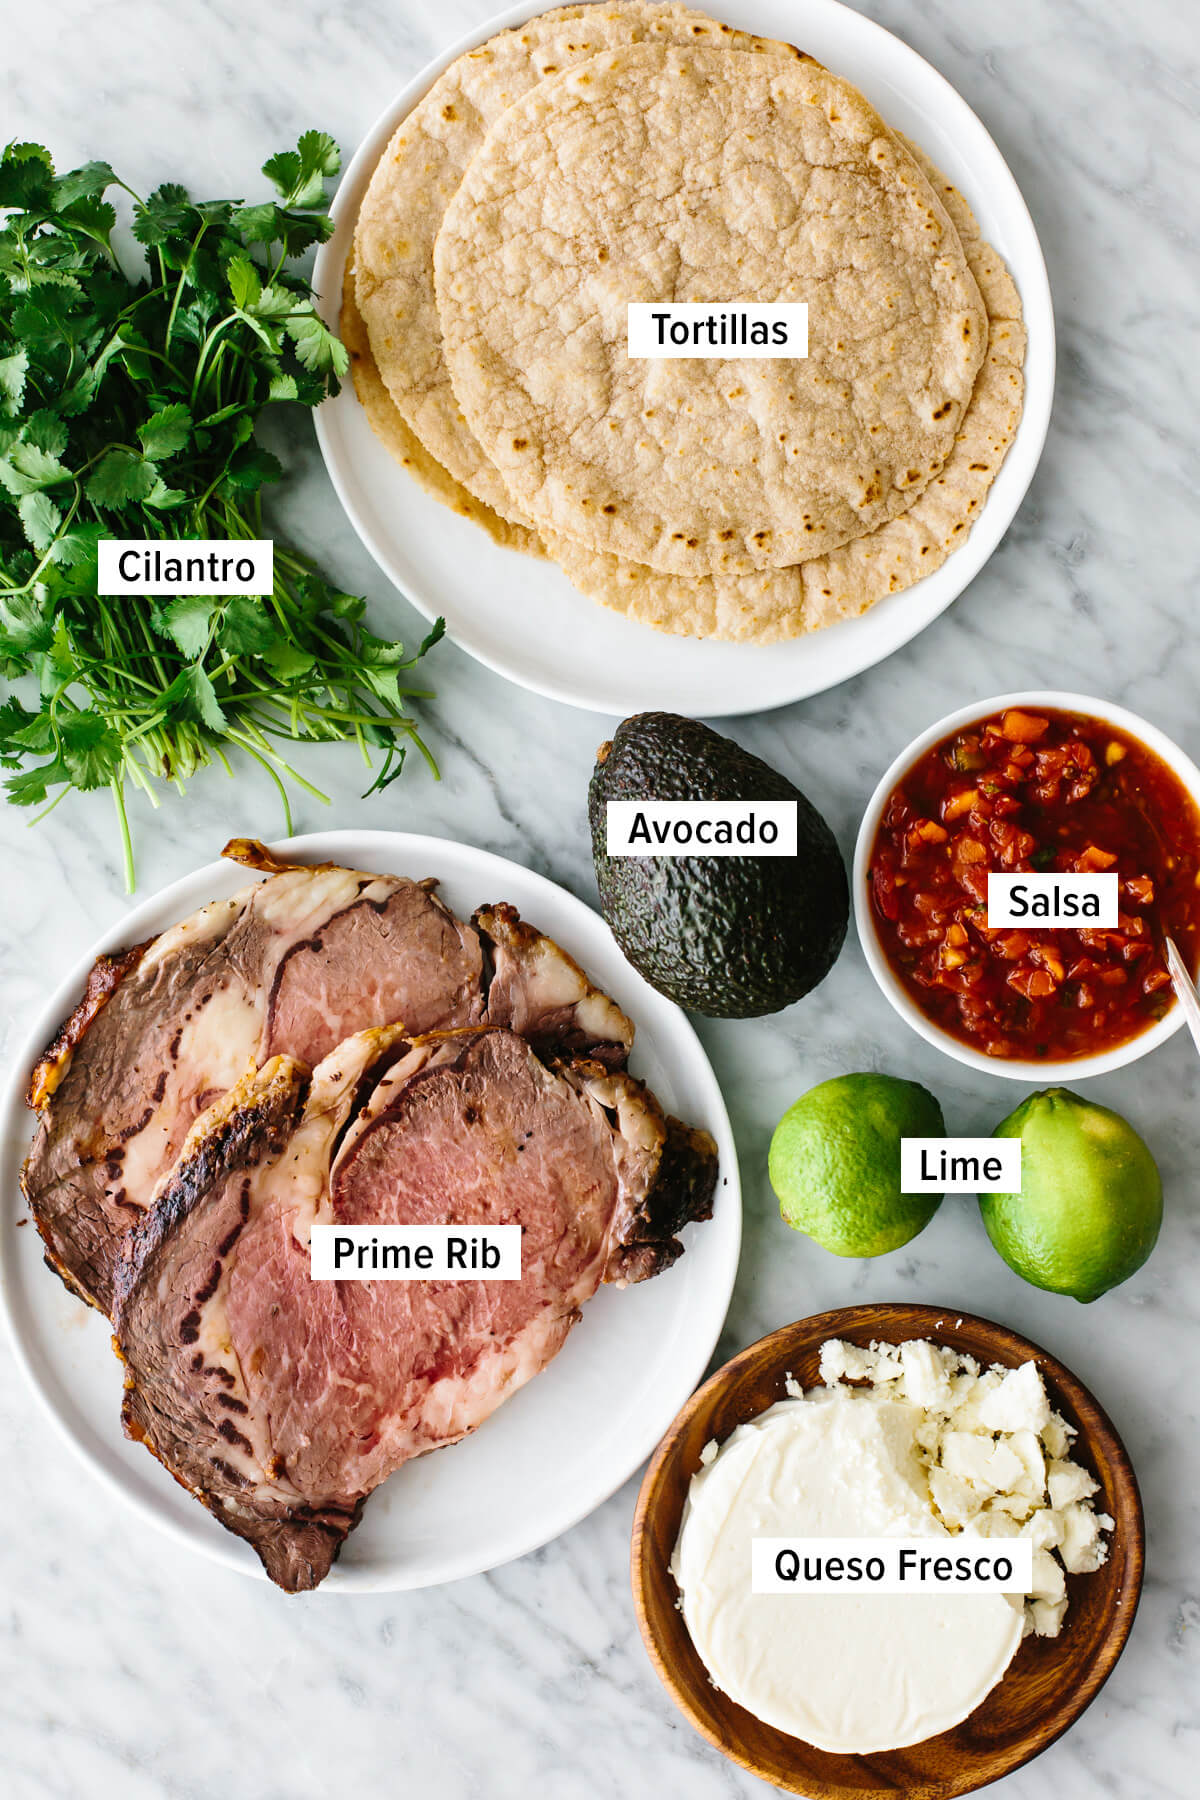 Prime rib taco ingredients on a table.